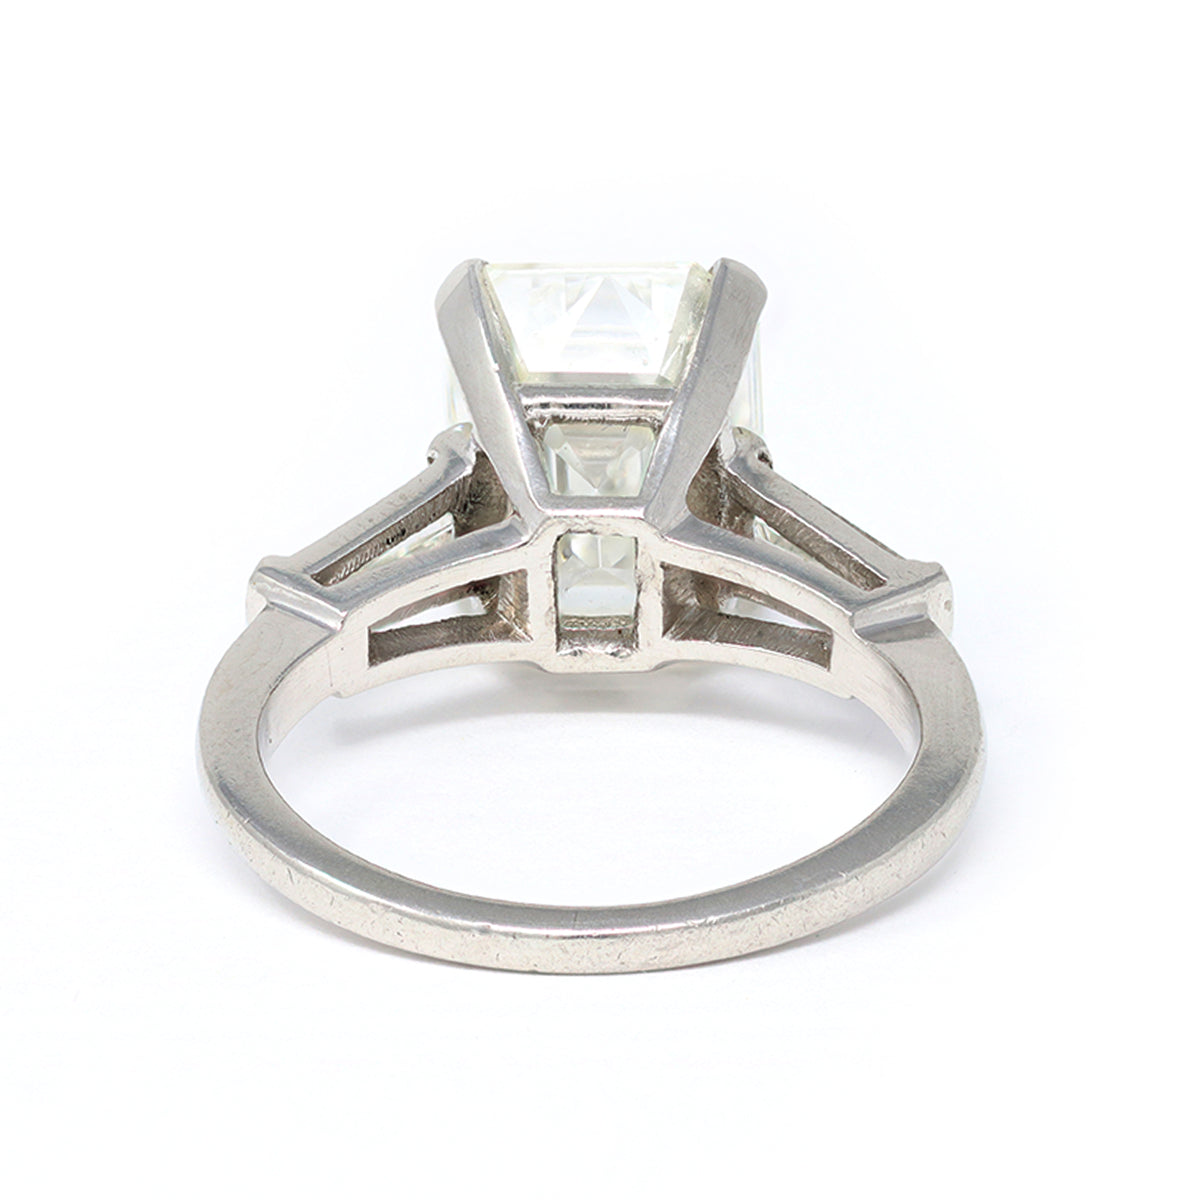 3.83 Carat Emerald-Cut Diamond Engagement Ring in Platinum with GIA Report back view